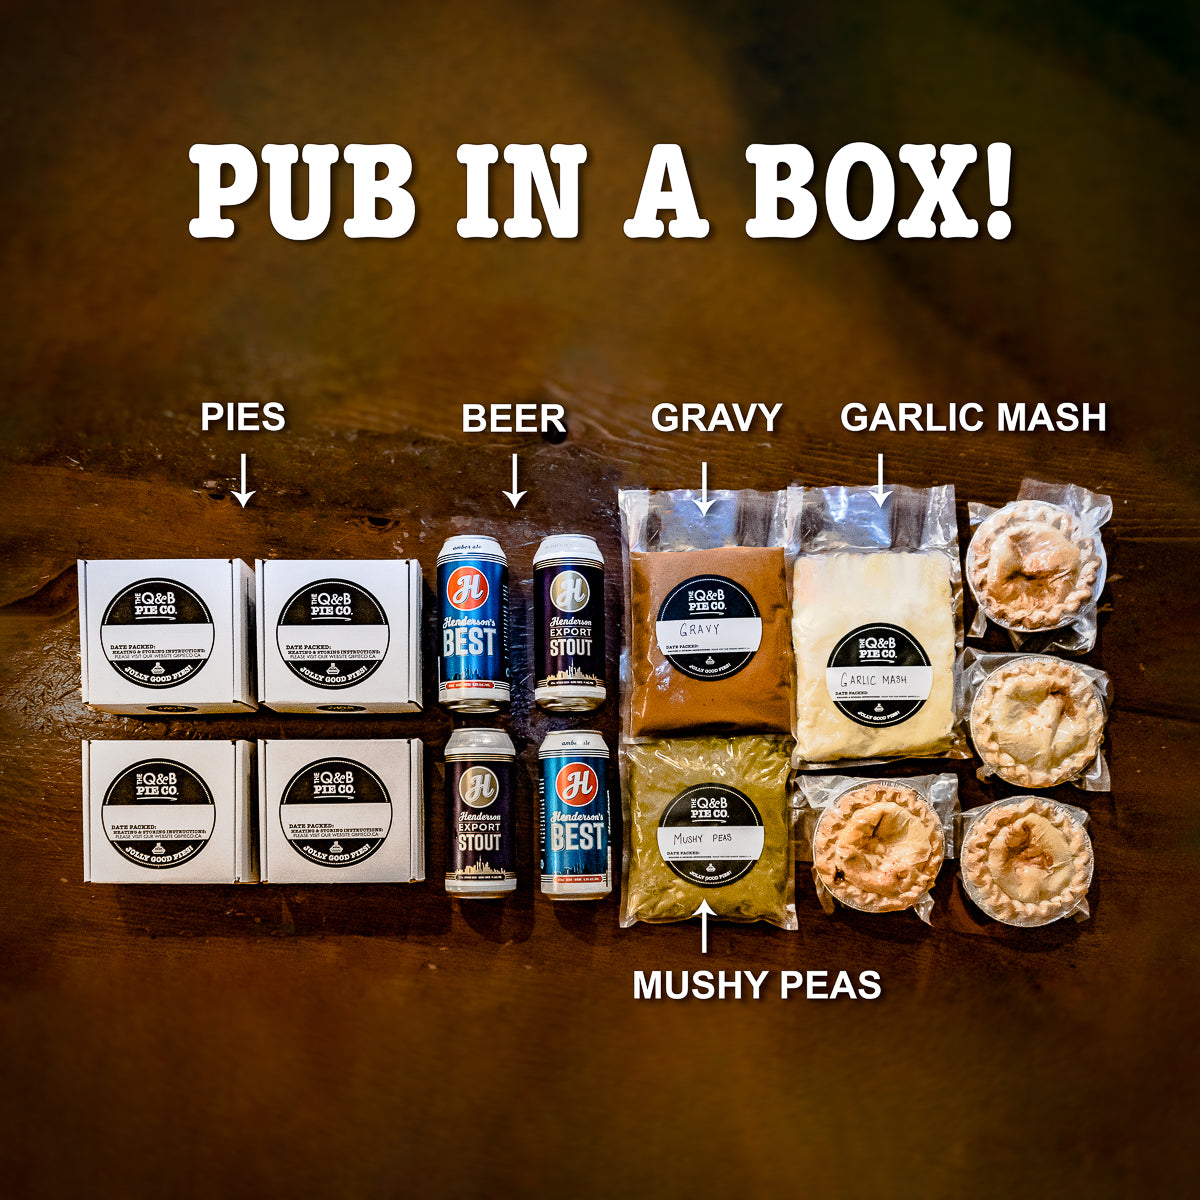 Pub In A Box!